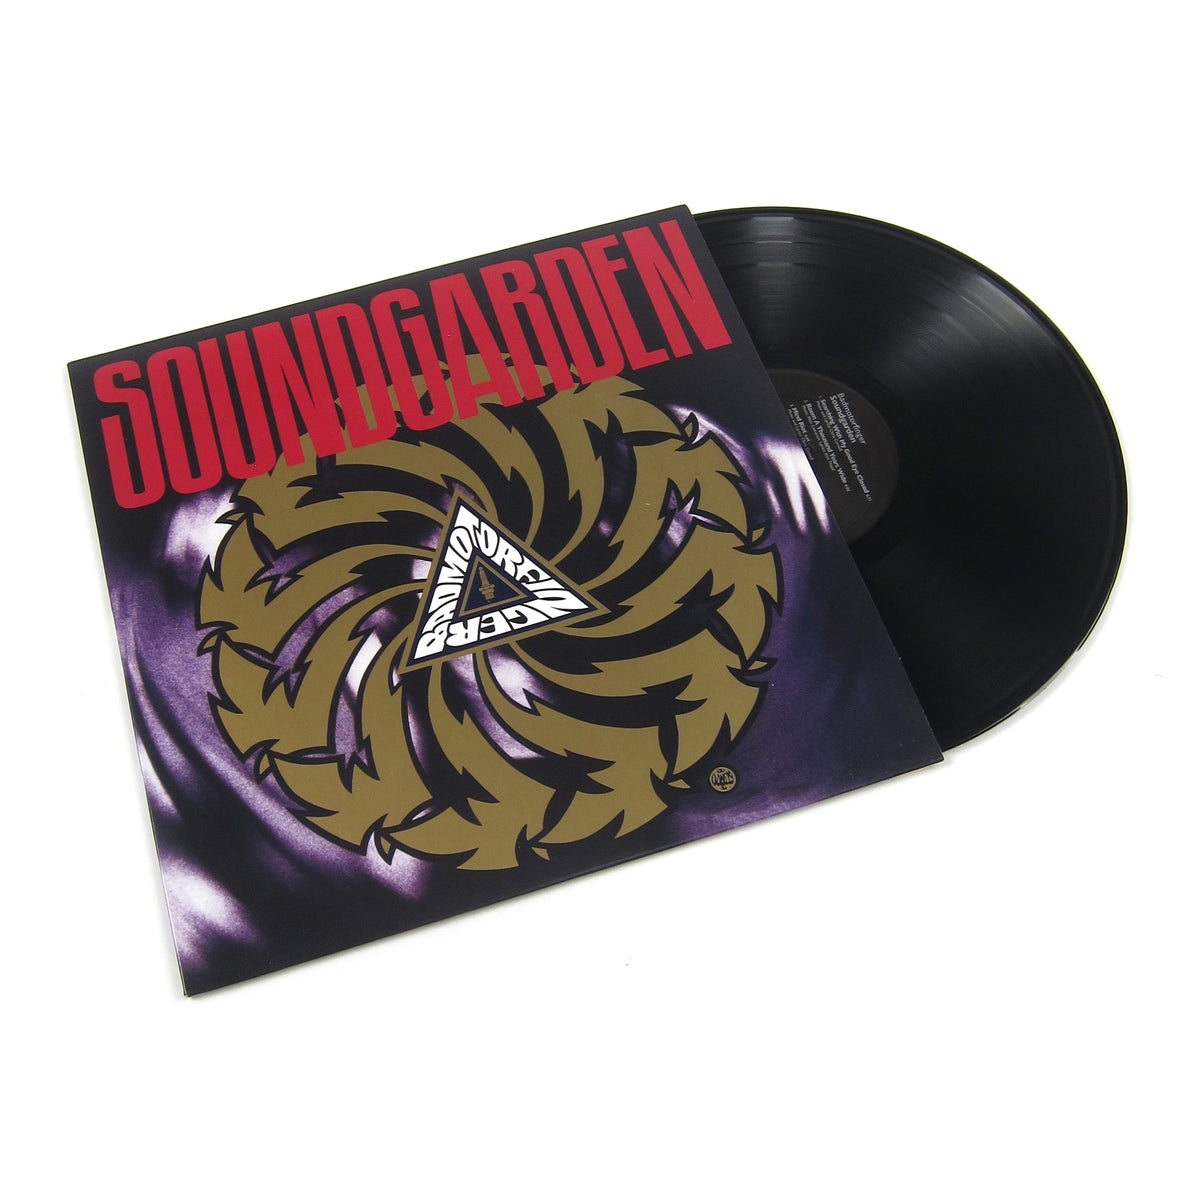 Soundgarden: Badmotorfinger Vinyl LP